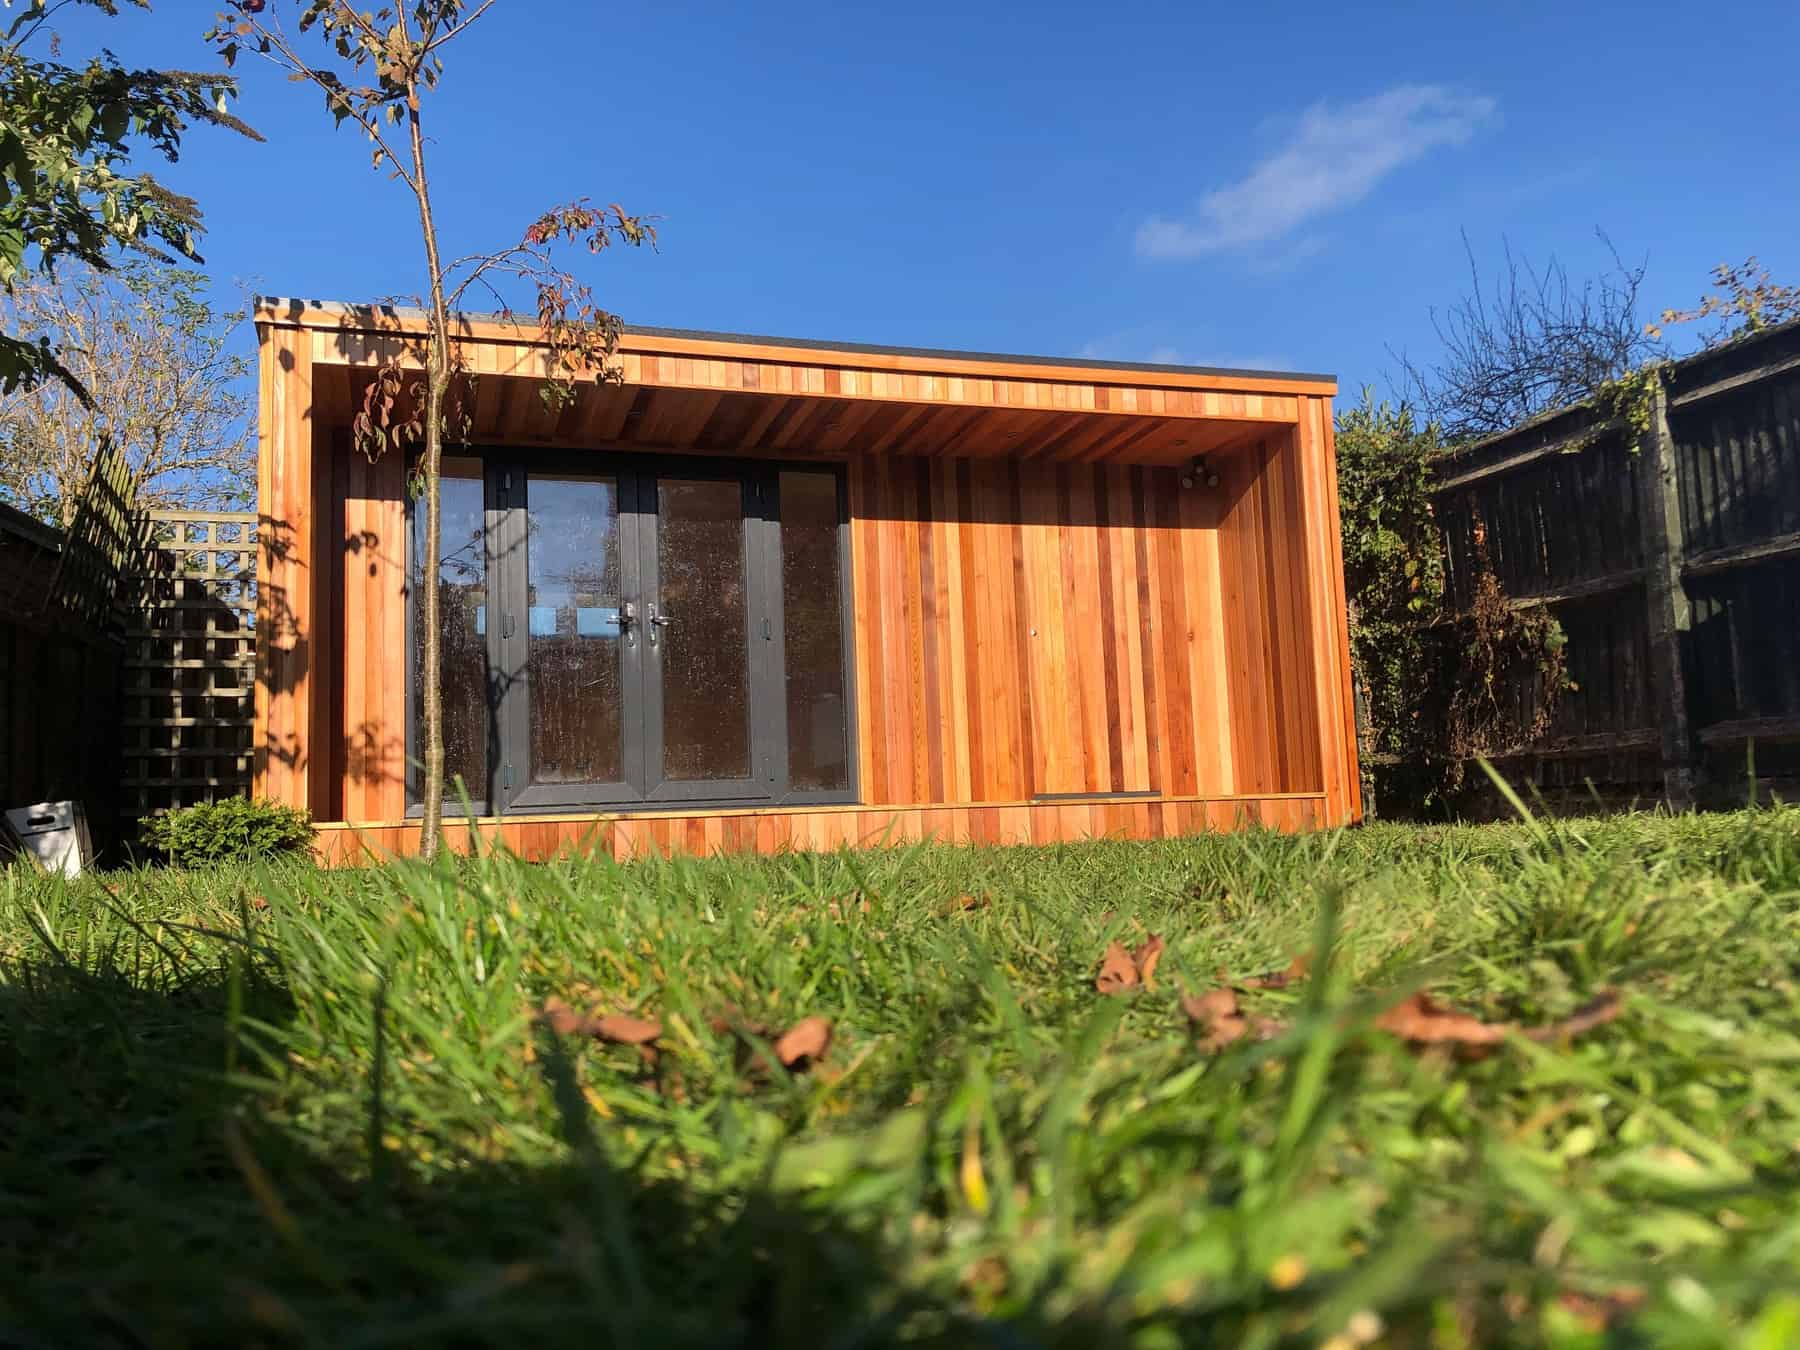 Concave Garden Office with a secret shed door